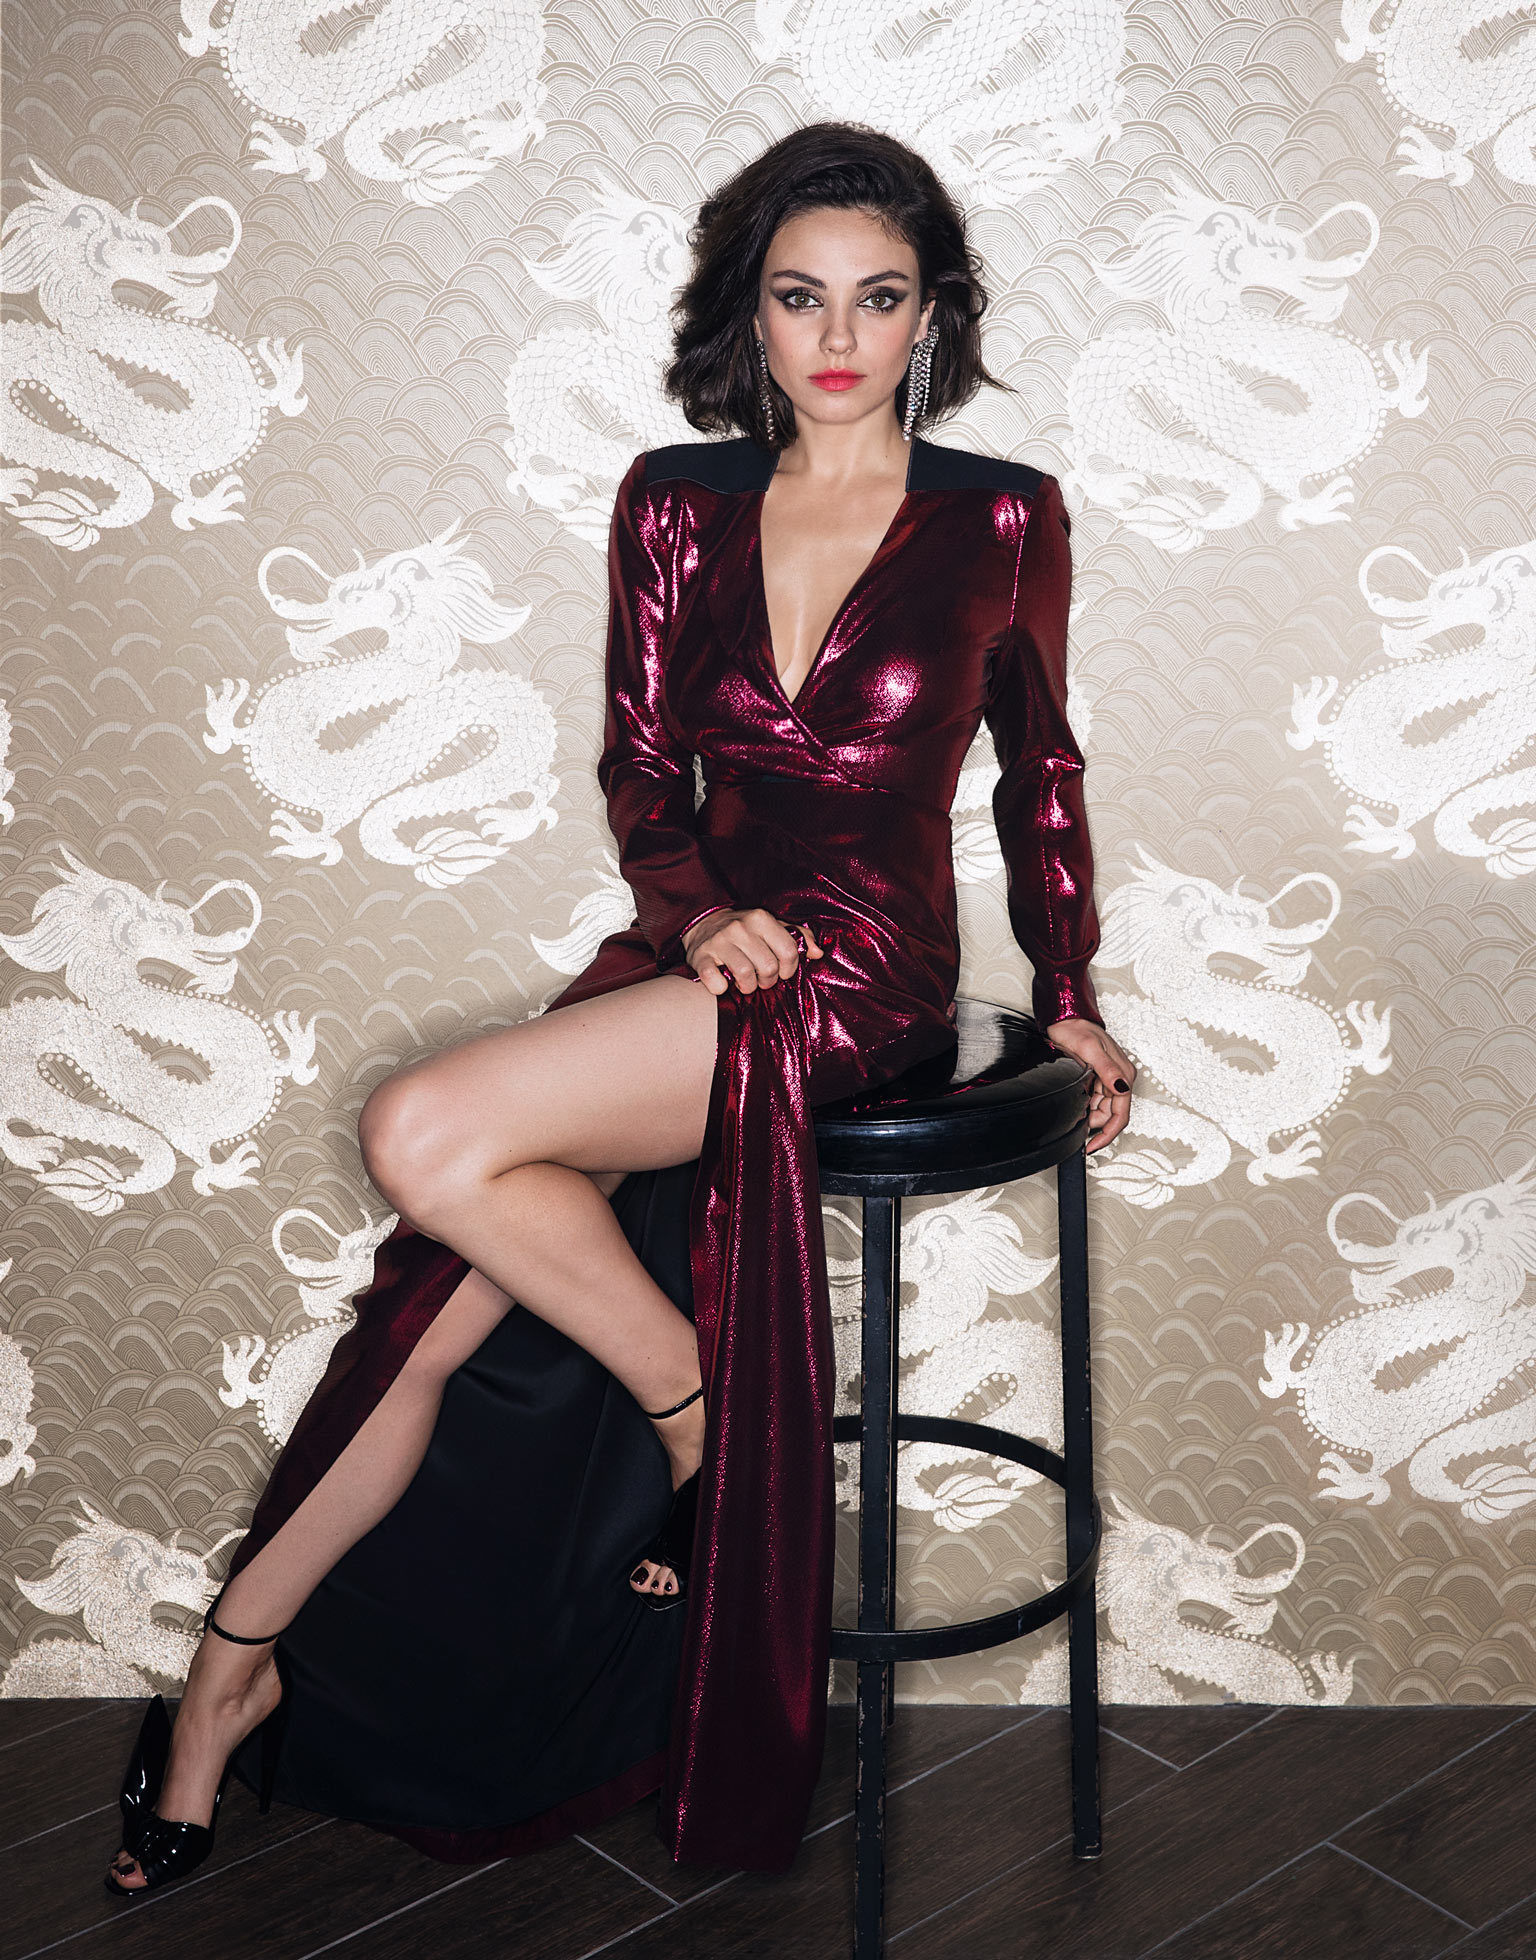 mila Kunis gorgeous - Mila Kunis Net Worth, Movies, Family, Husband, Pictures and Wallpapers